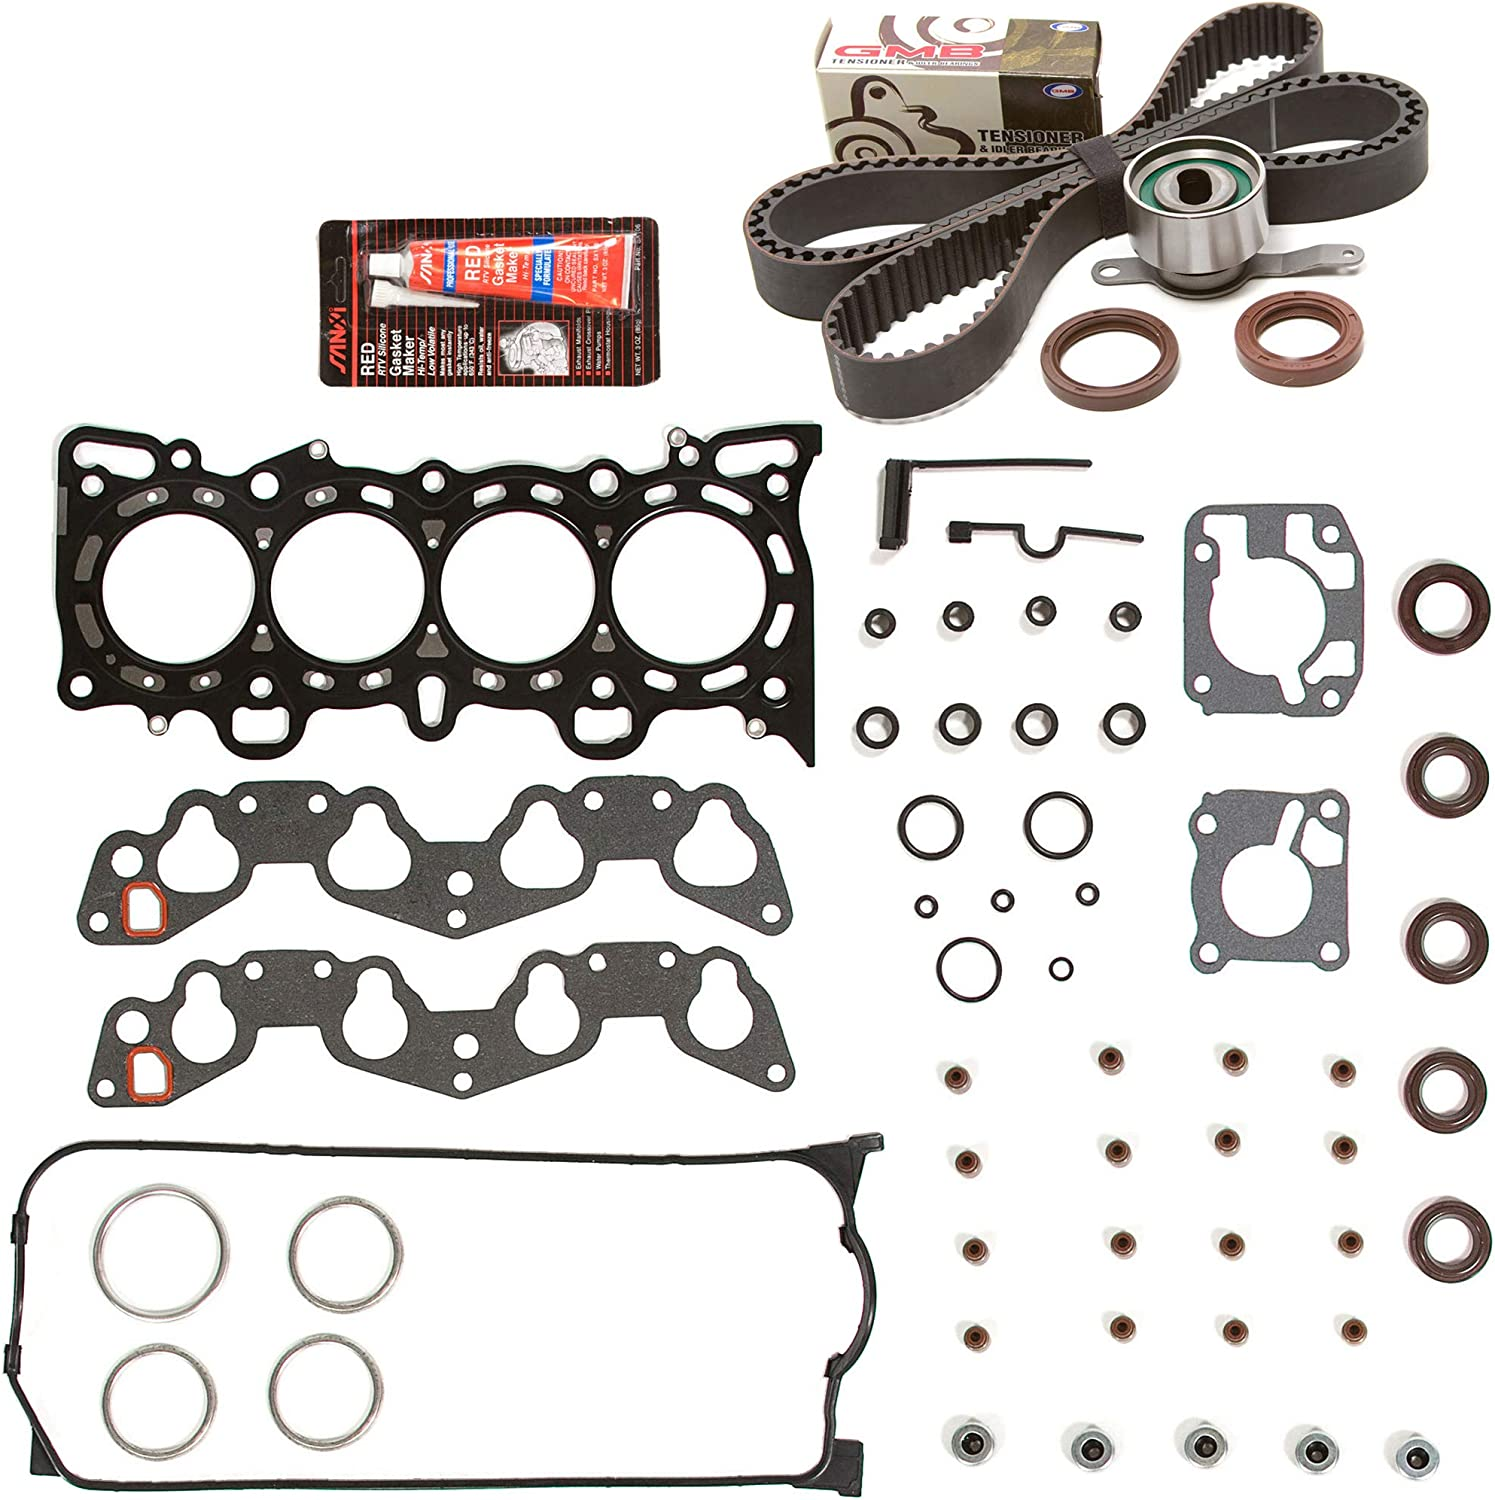 Evergreen HSTBK4028-2 Head Gasket Now free Dallas Mall shipping Set Compatible Kit Belt Timing